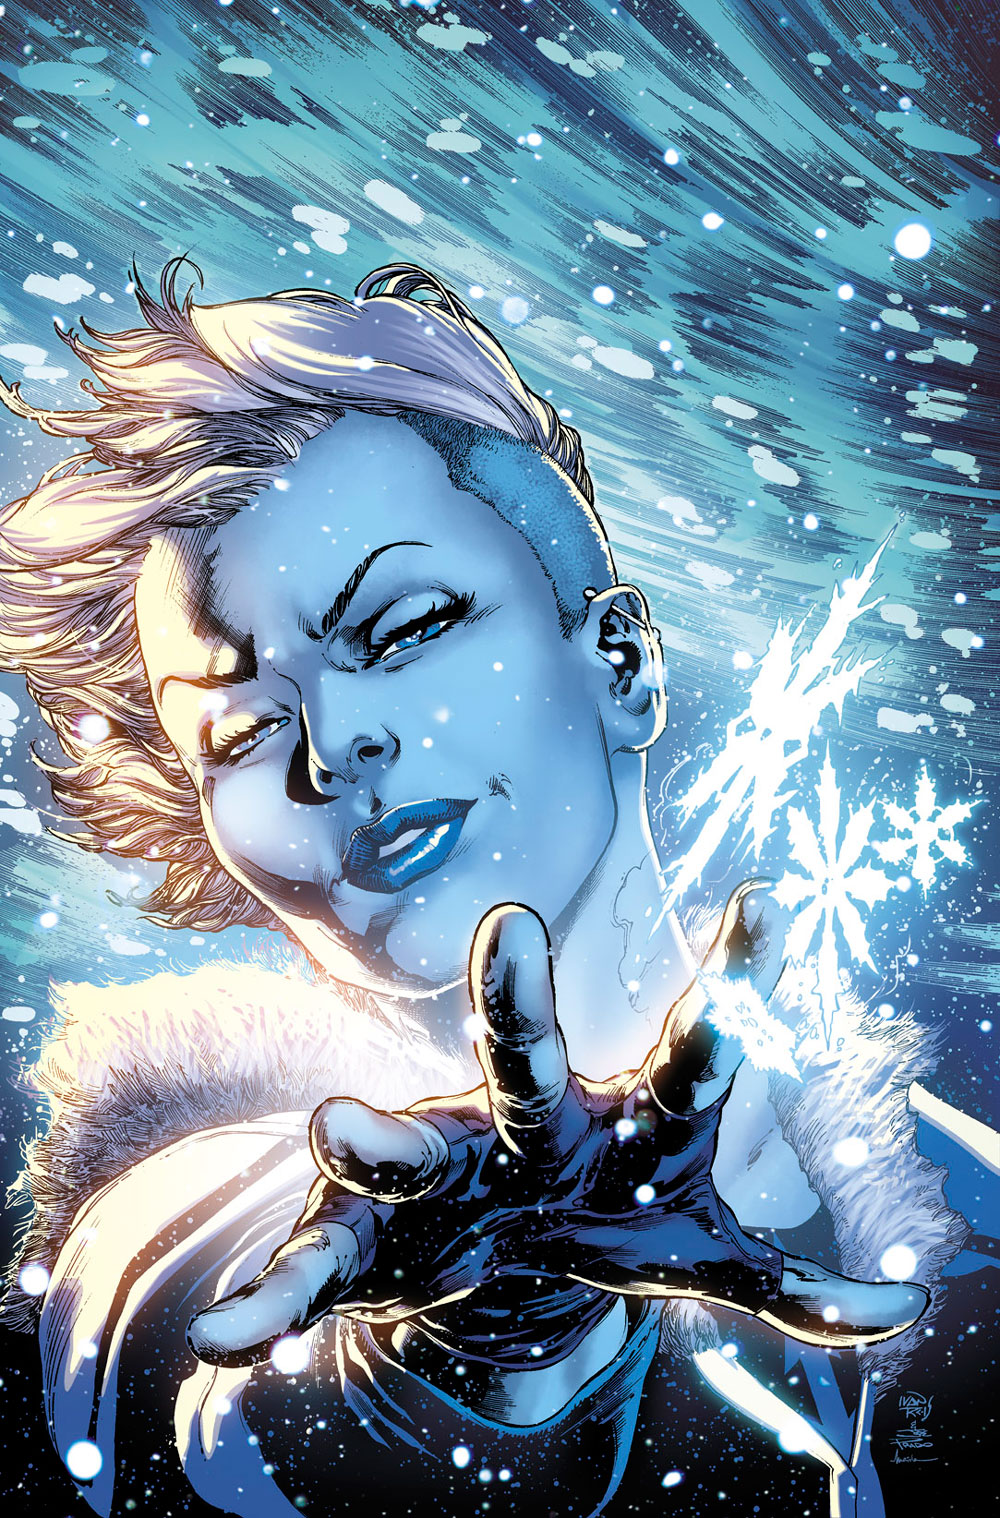 Justice League of America: Killer Frost #1